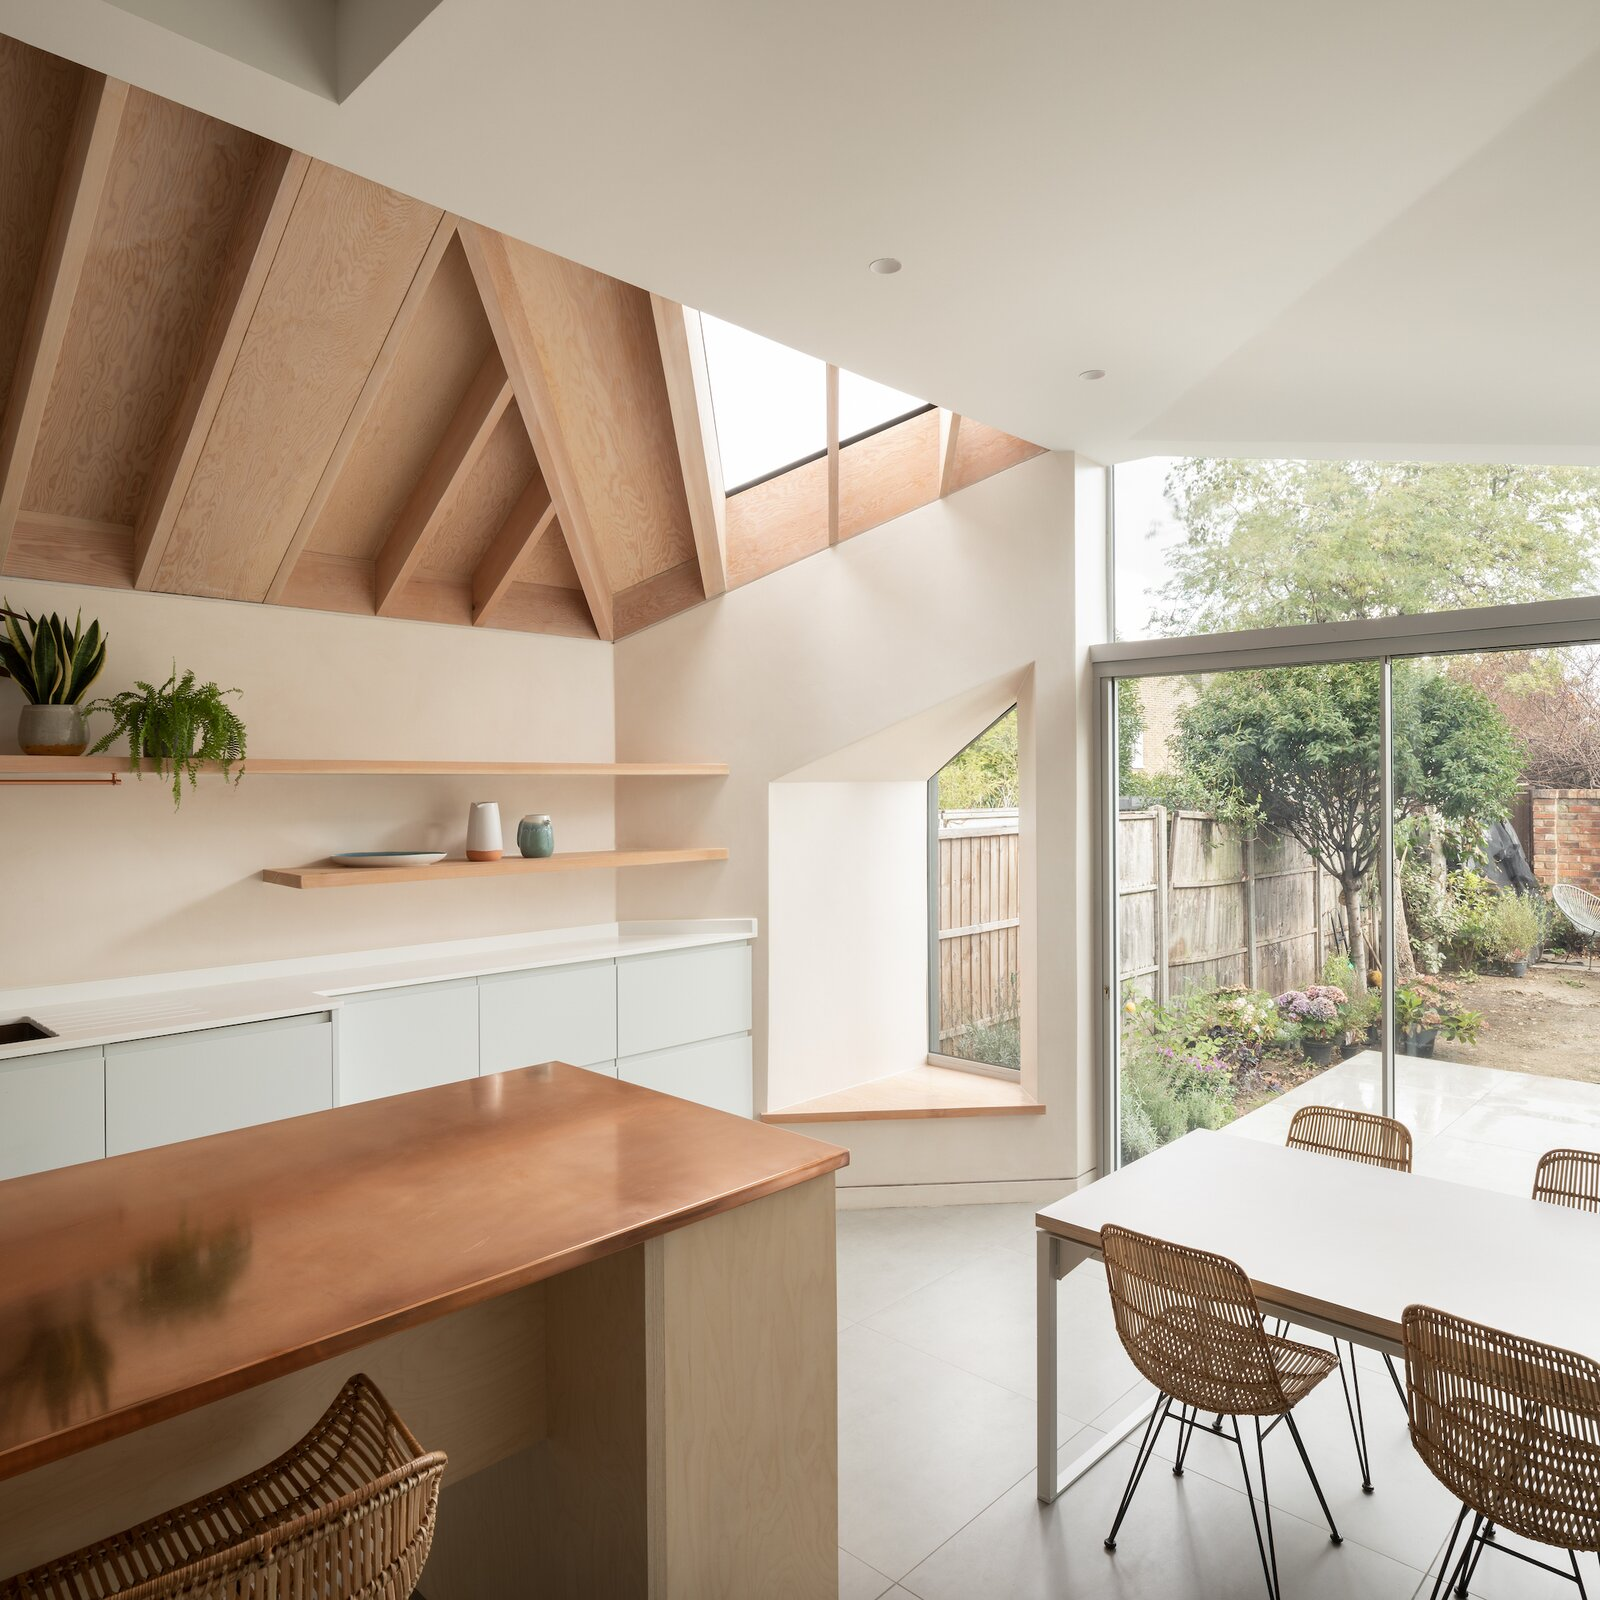 Kitchen and dining of Quarter Glass House by Proctor & Shaw.